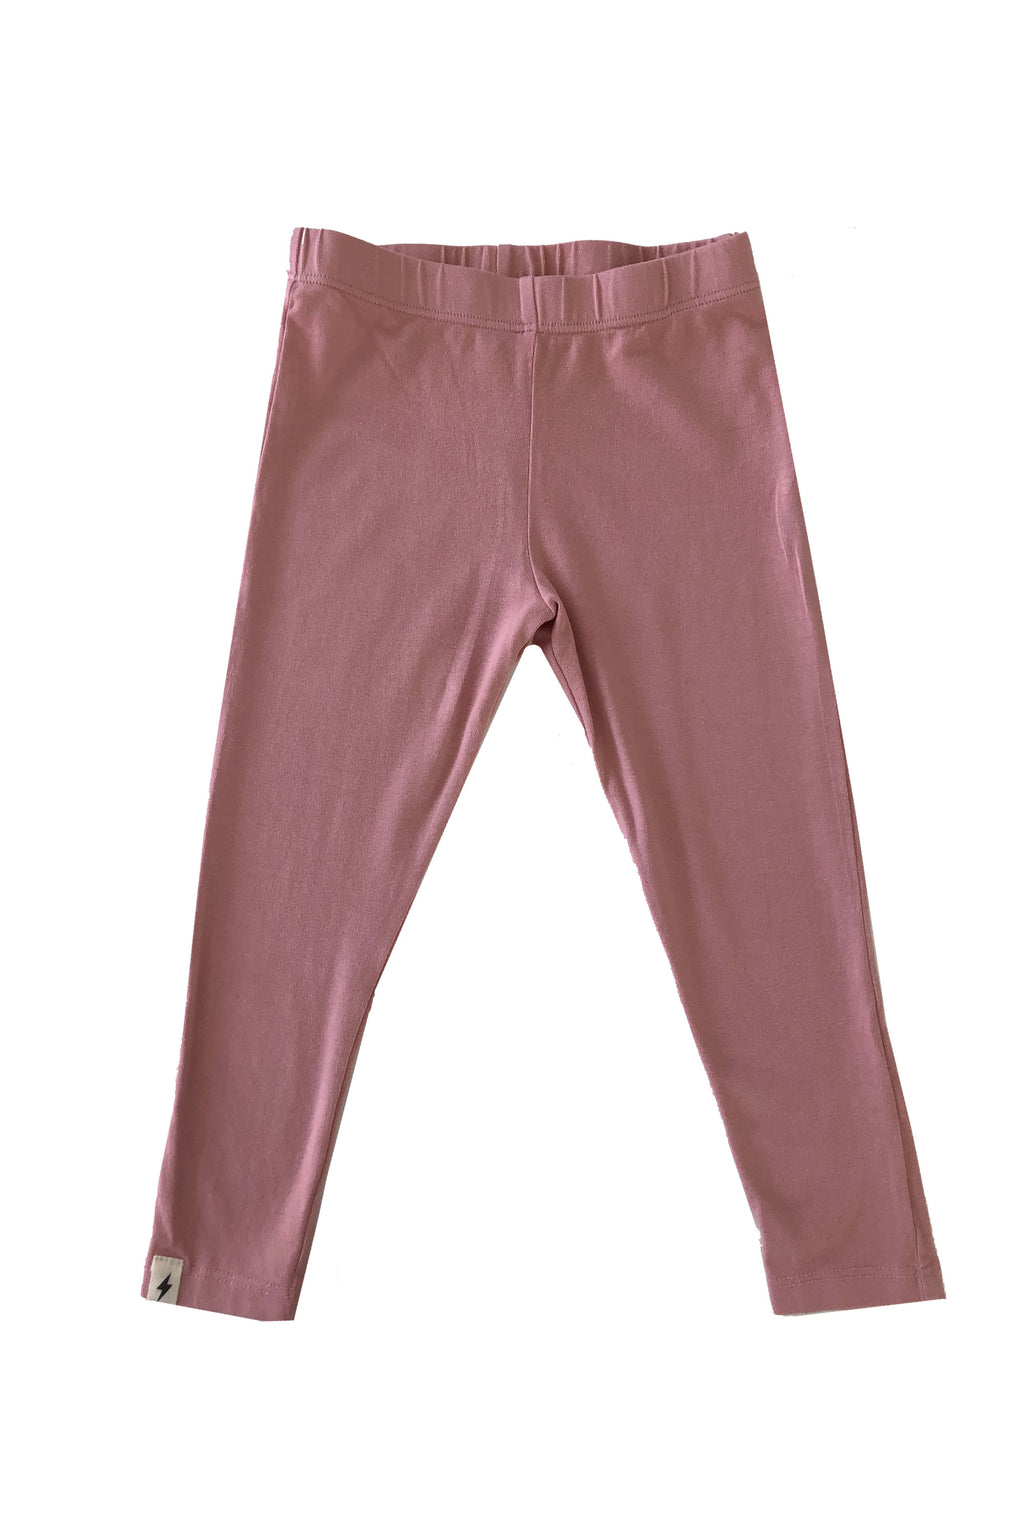 Summer Leggings in Dusty Pink